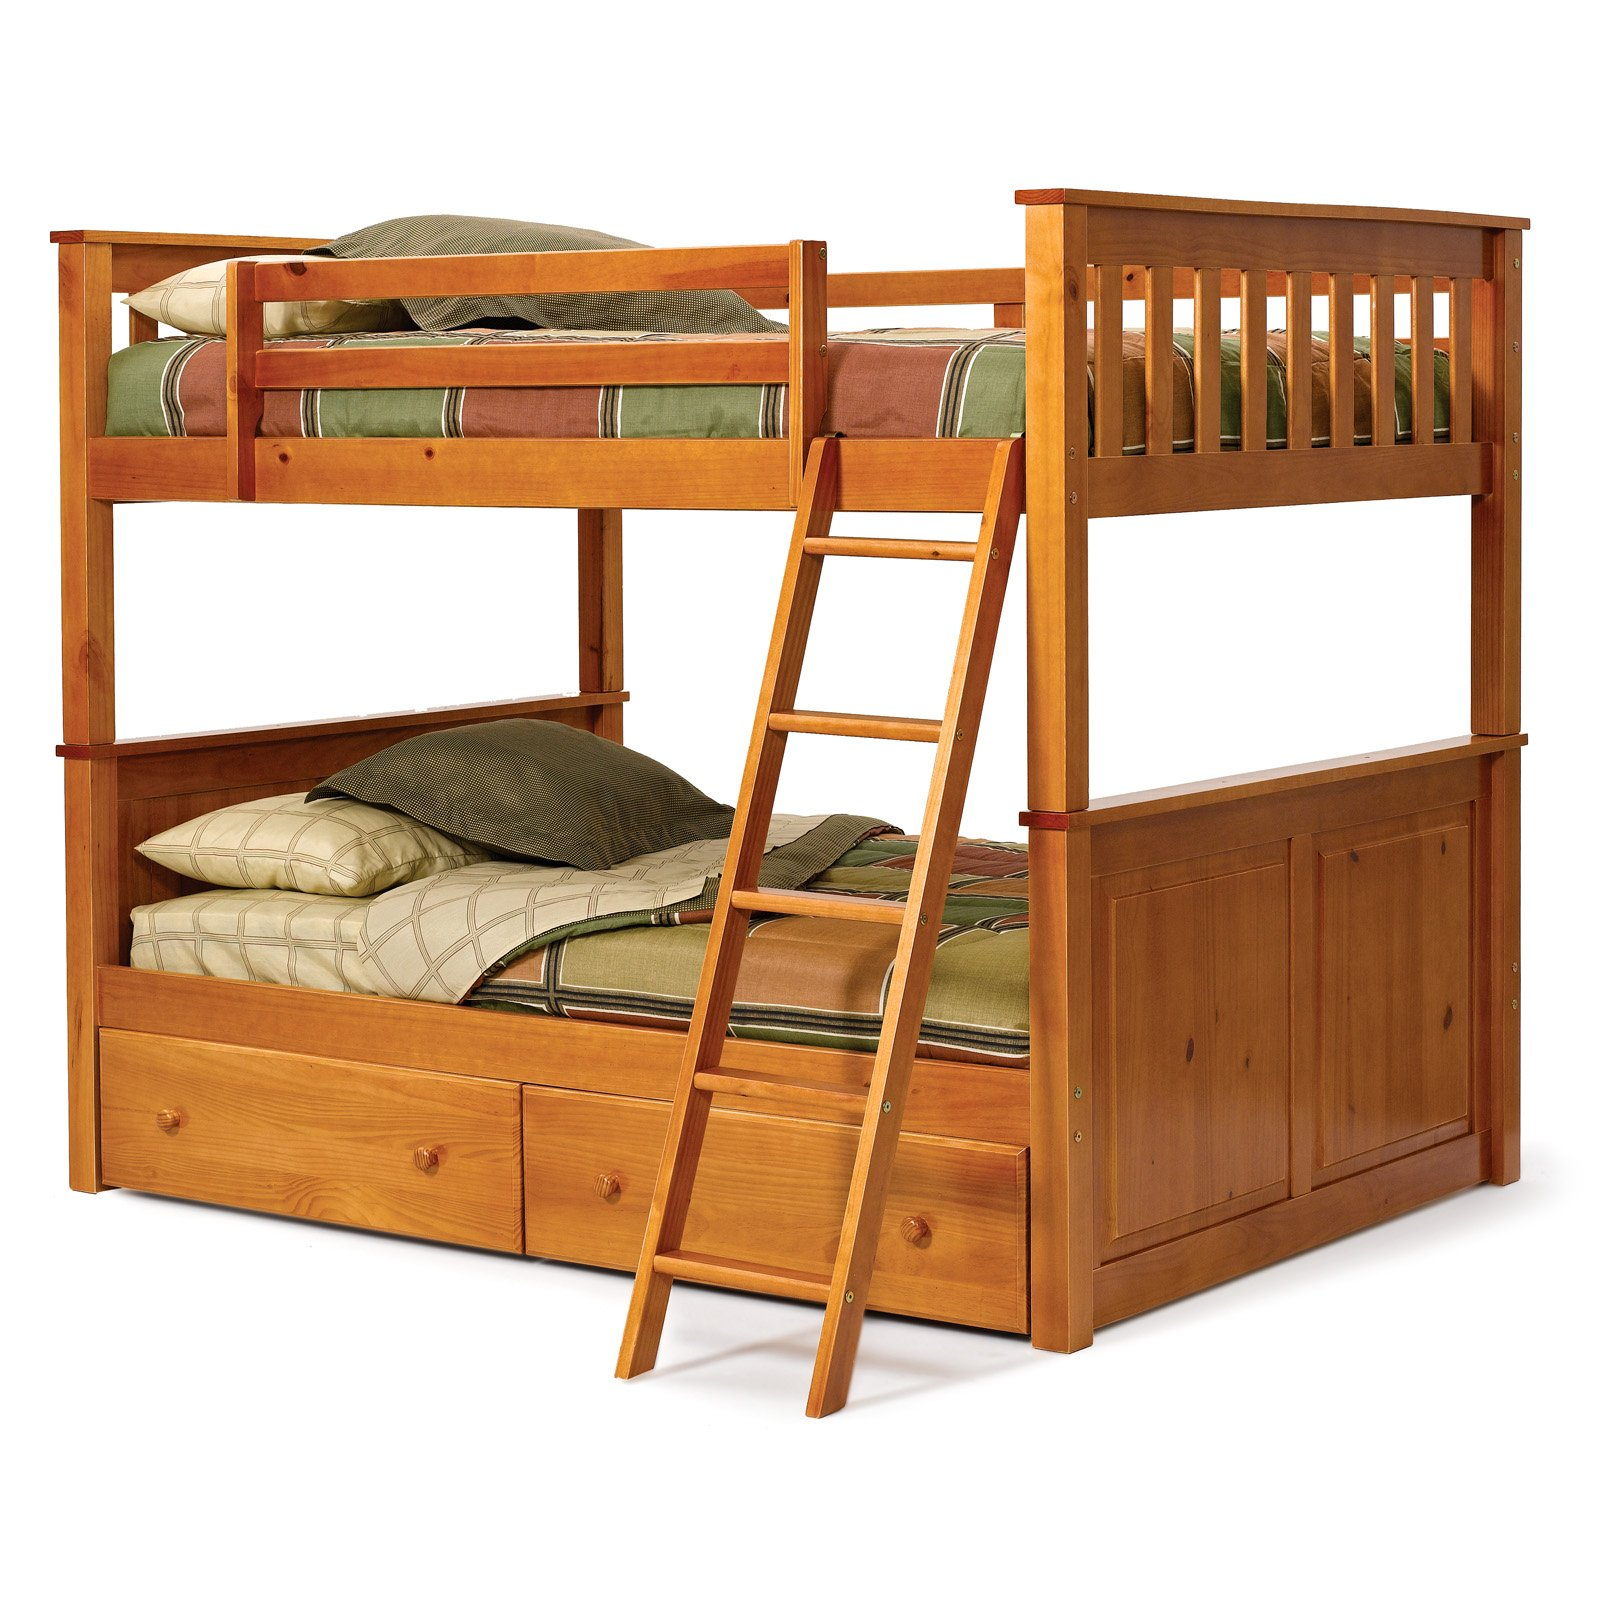 Uaeshops Wooden Bunk Bed By Smart Home Furniture L L C The Largest Shop Database In The Uae